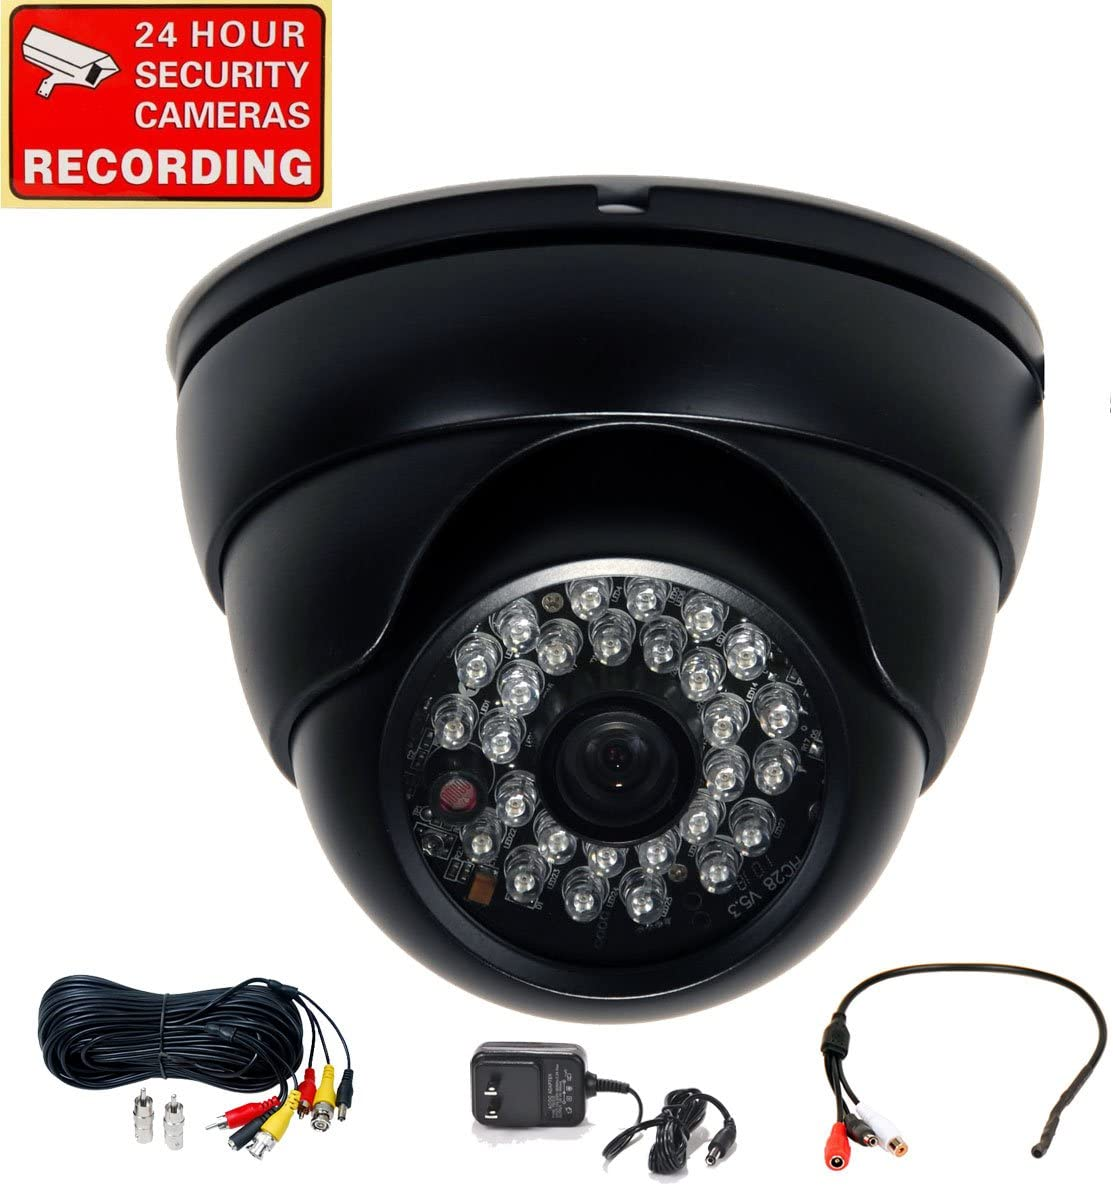 VideoSecu Built-in 1 3 Effio CCD Day Night Outdoor IR CCTV Security Camera 700TVL 28 Infrared LEDs Wide Angle High Resolution Vandal Proof with Cable and Power Supply 1ZG